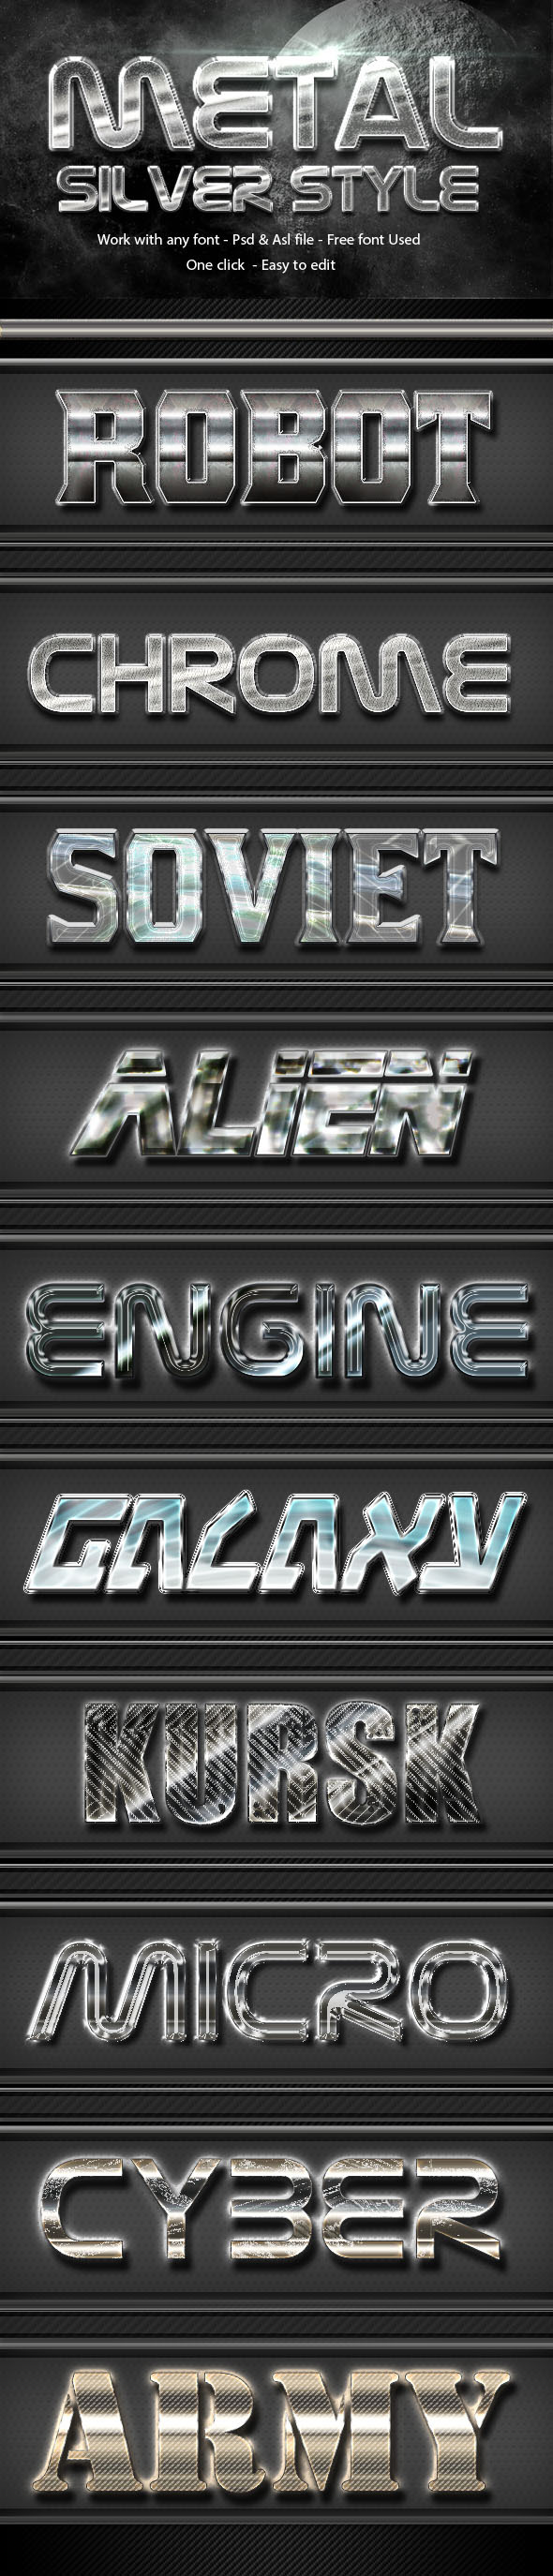 Metal Silver Text Effect Style Vol 1